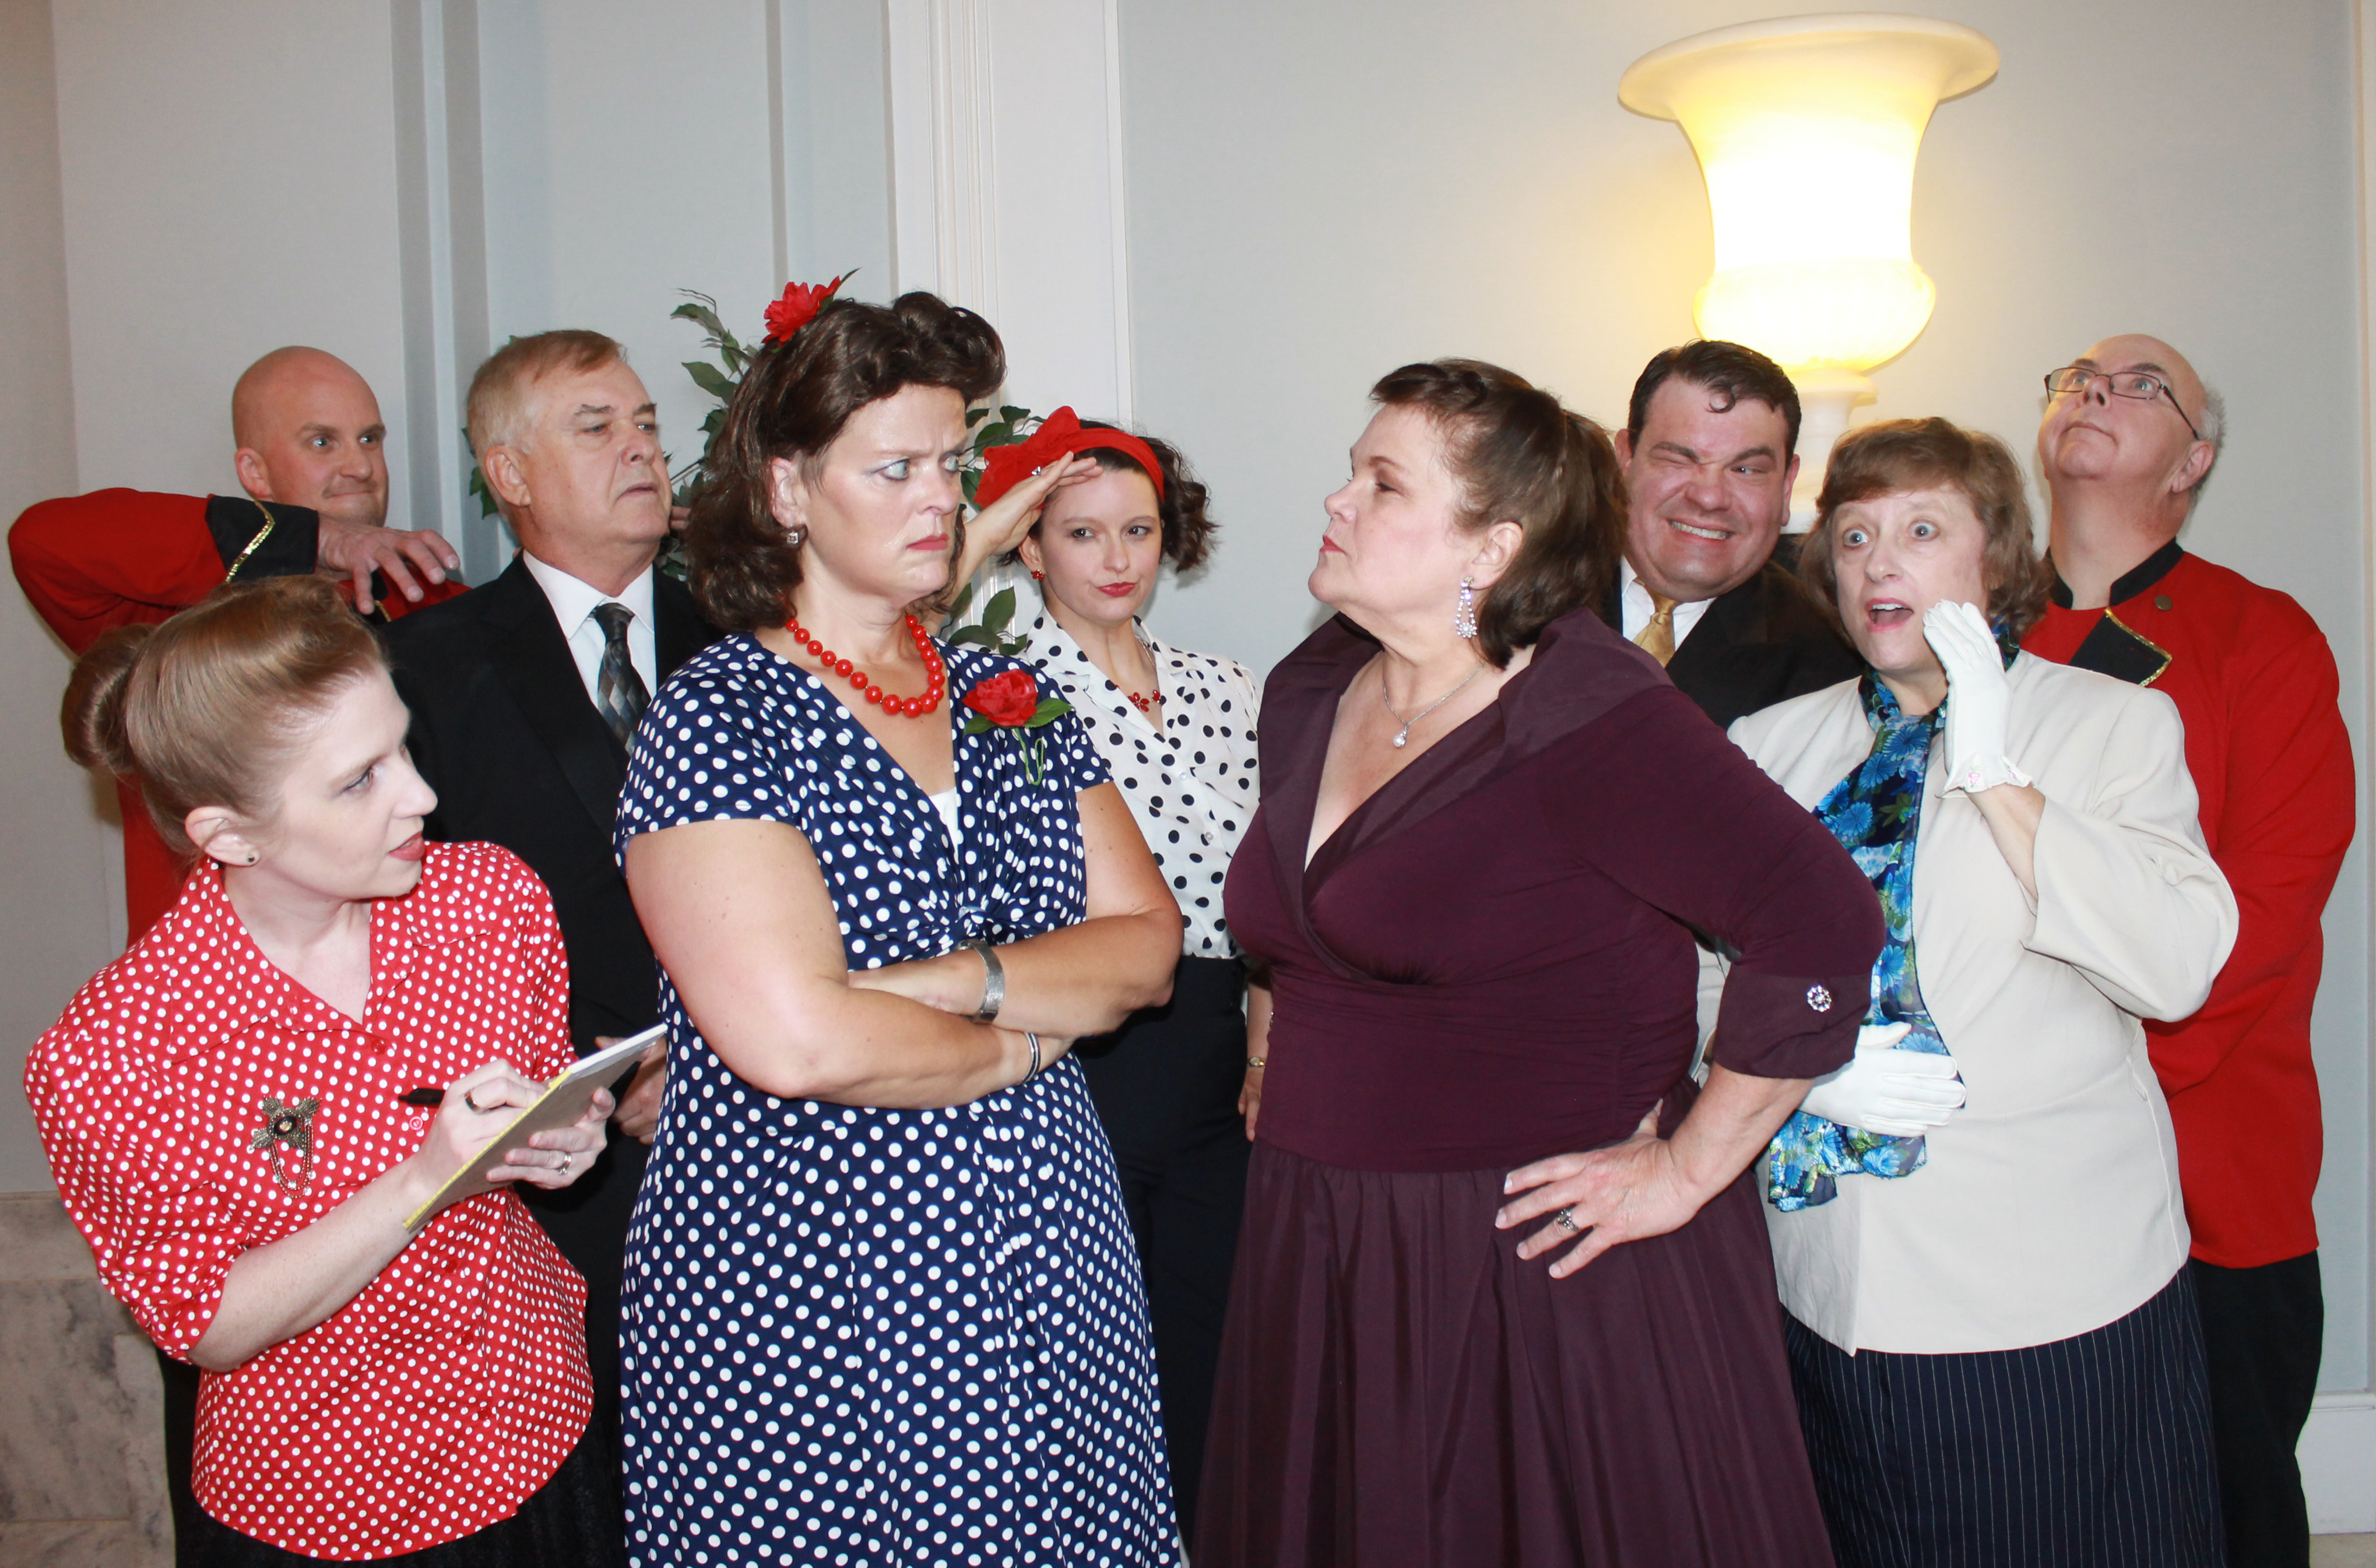 The Center for the Arts presents the hysterical farce SUITE SURRENDER